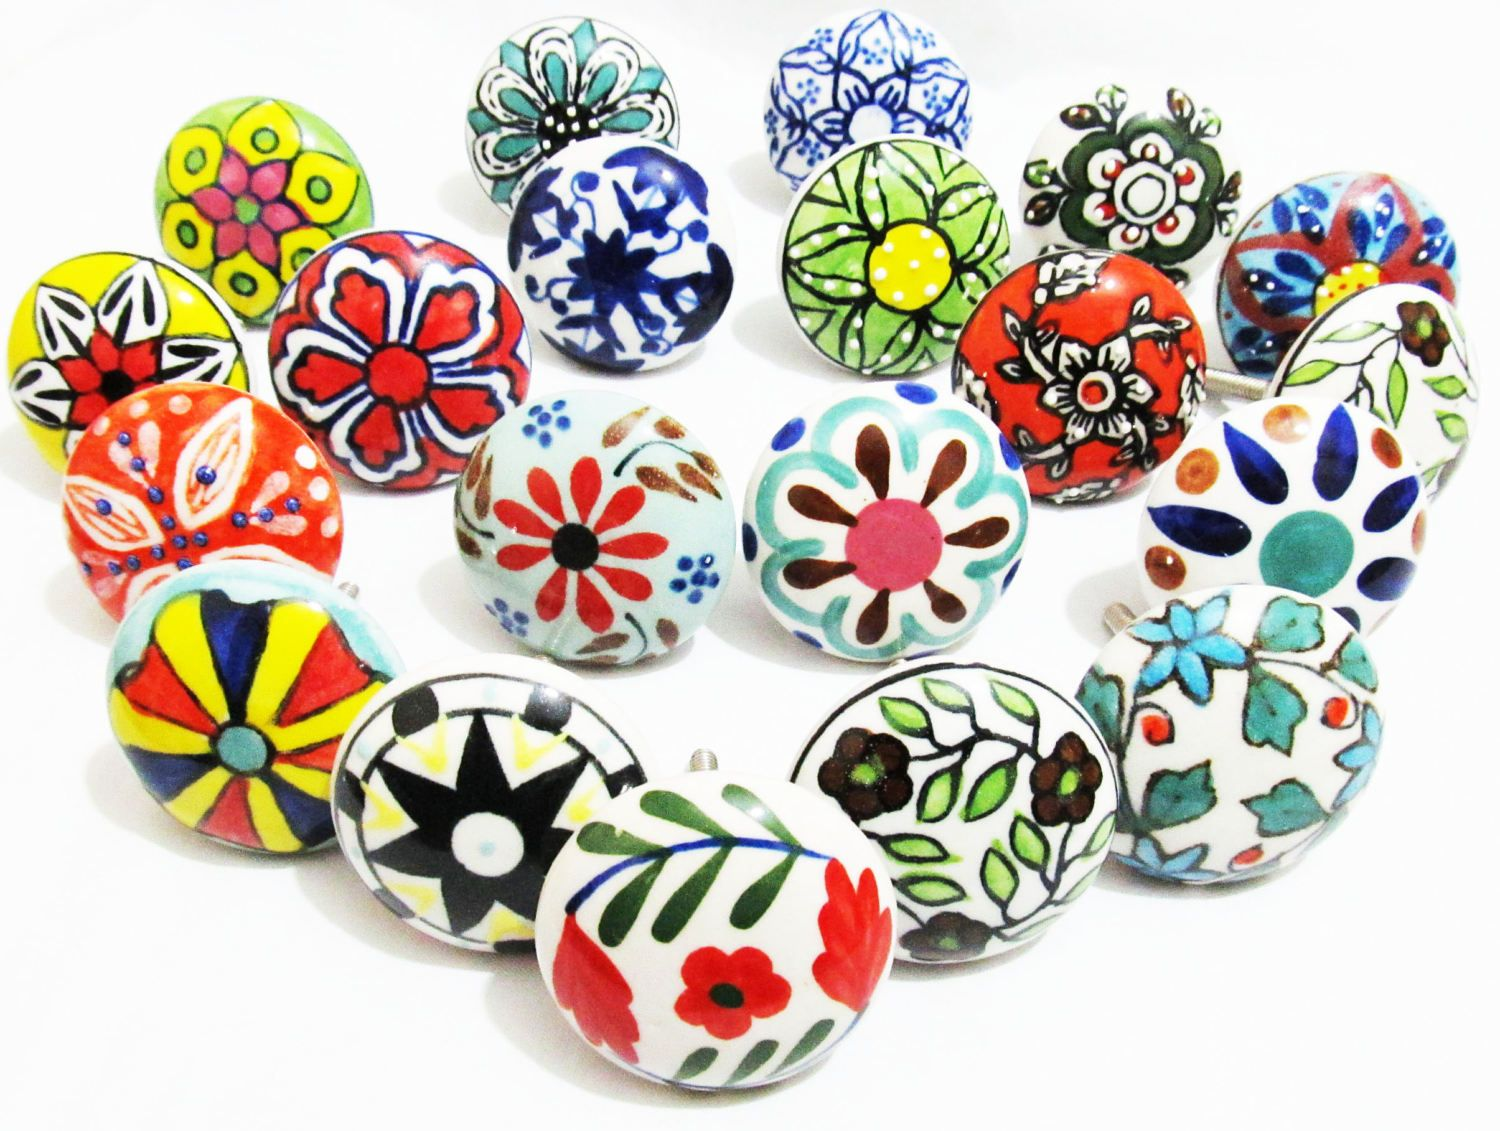 10 X Vintage Look French Style Ceramic Knobs Door Knob Handle